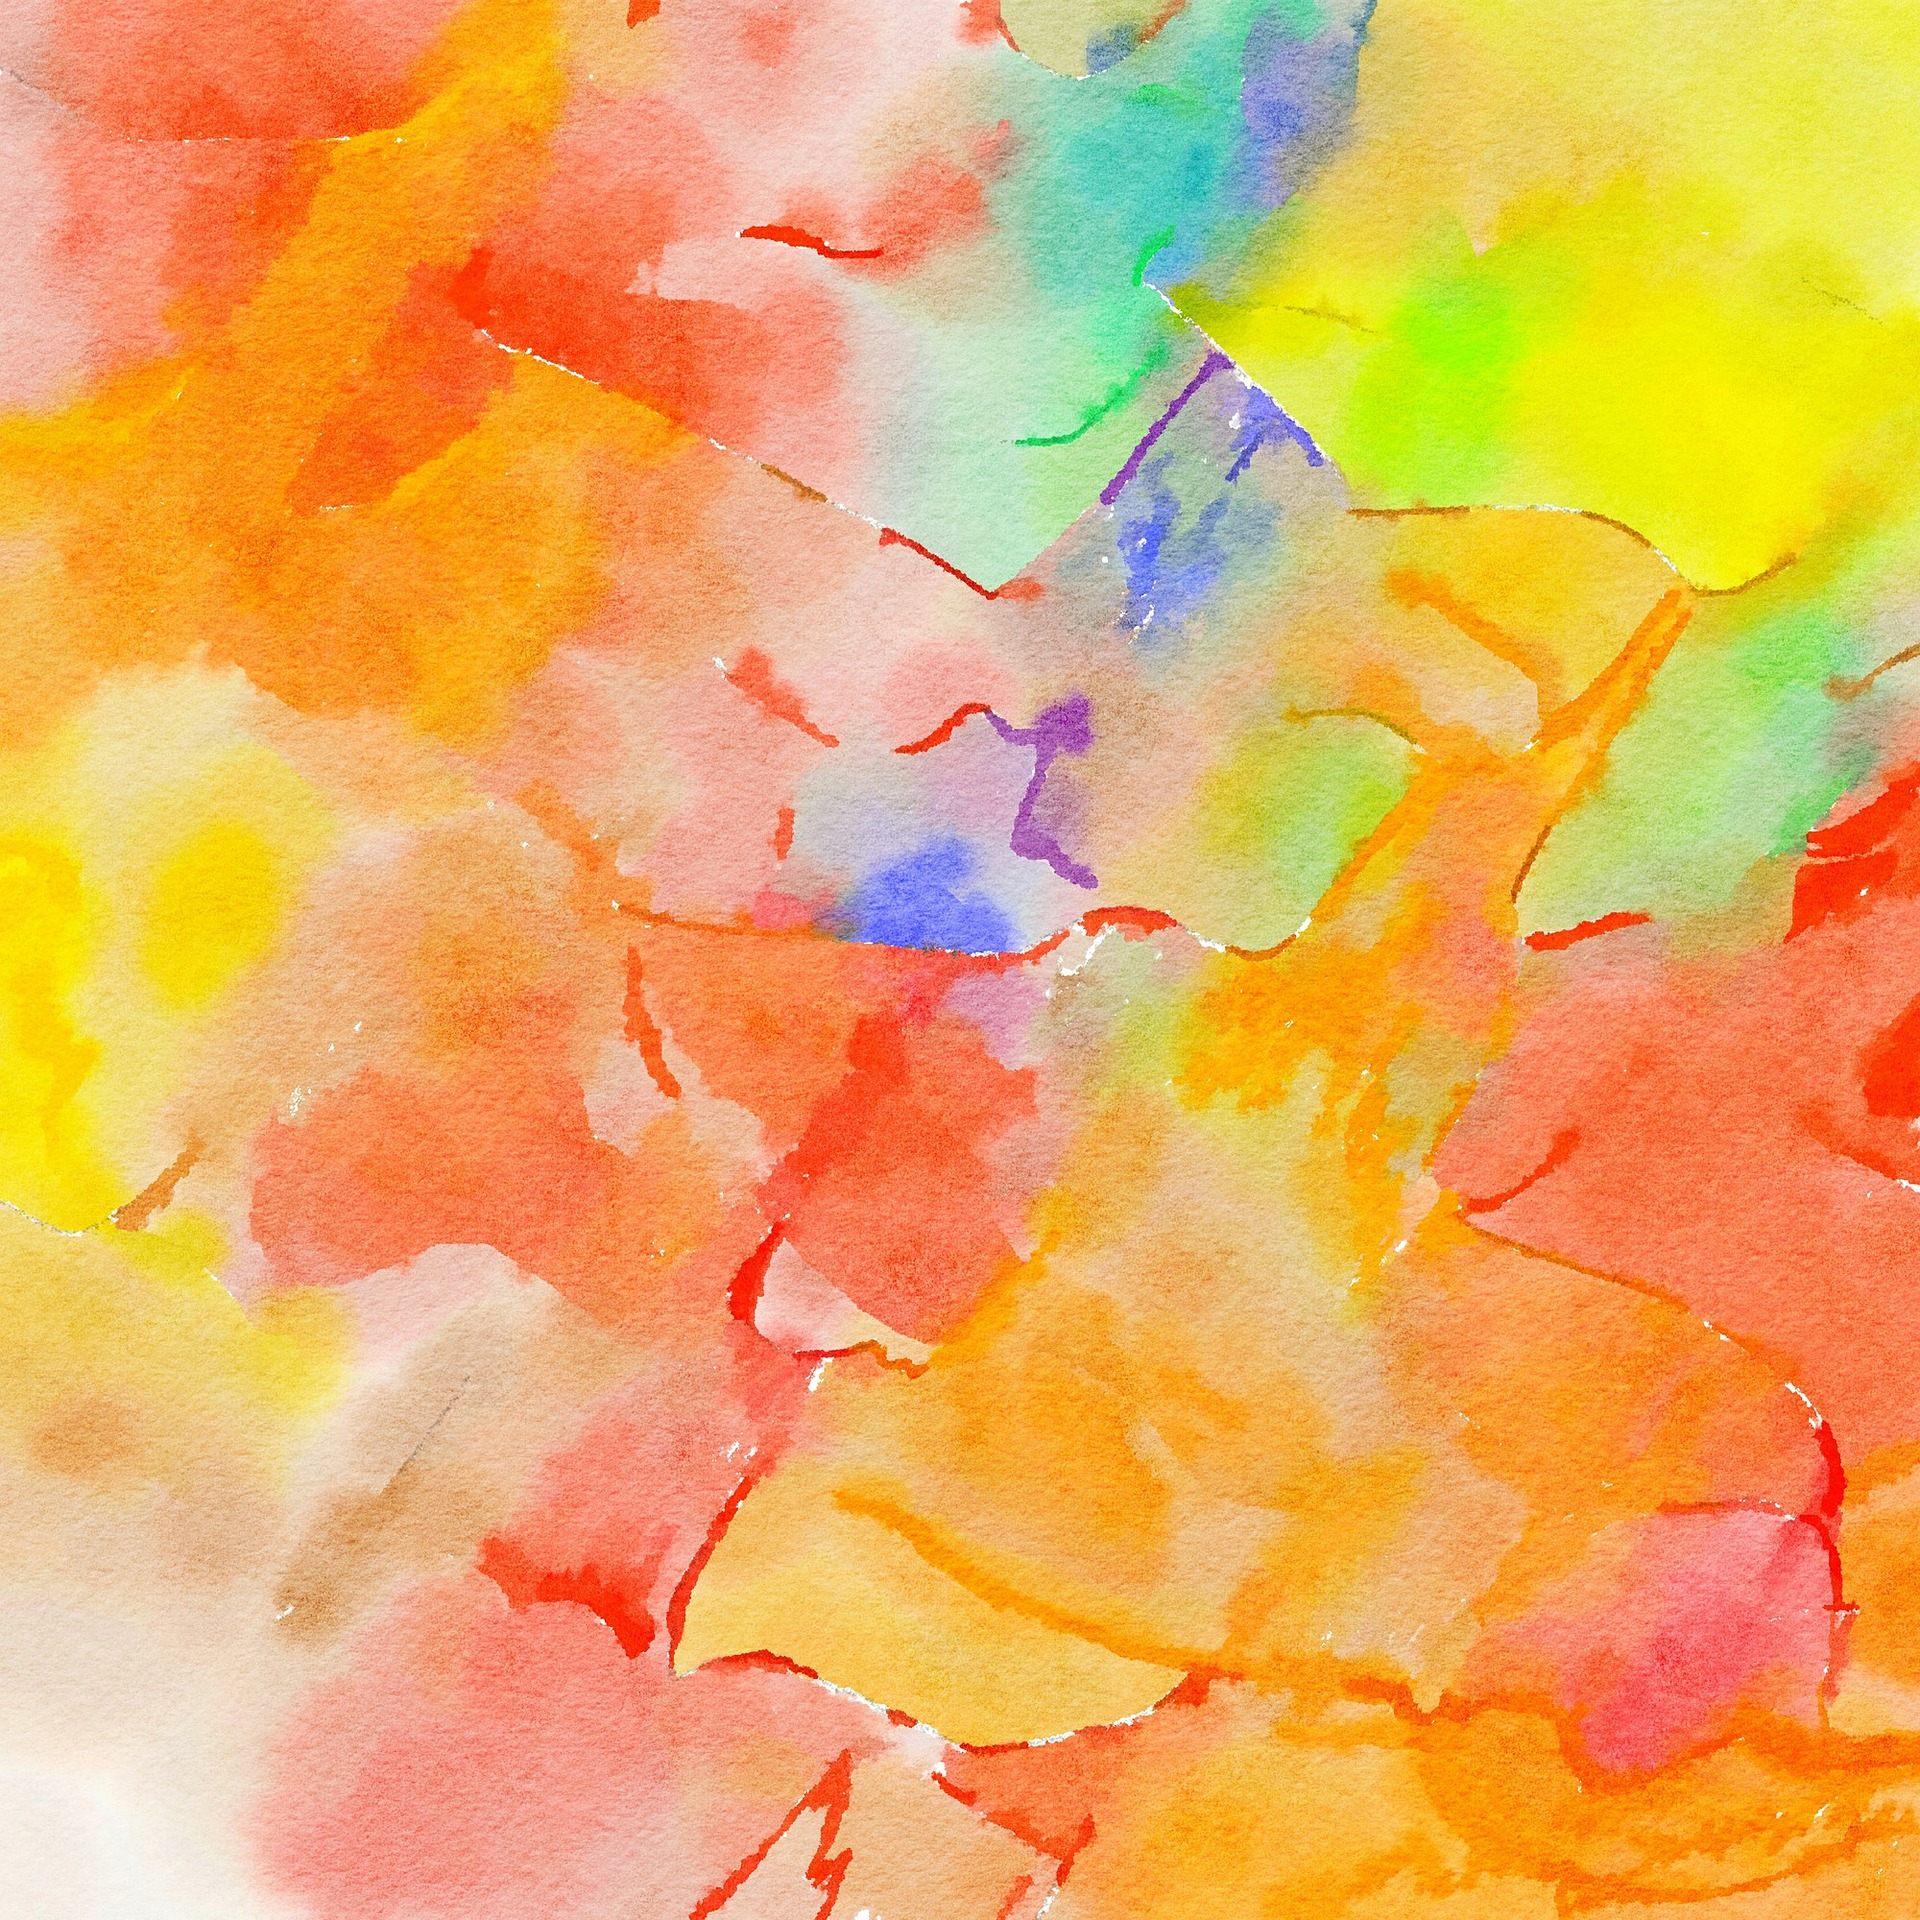 watercolour-2482680_1920